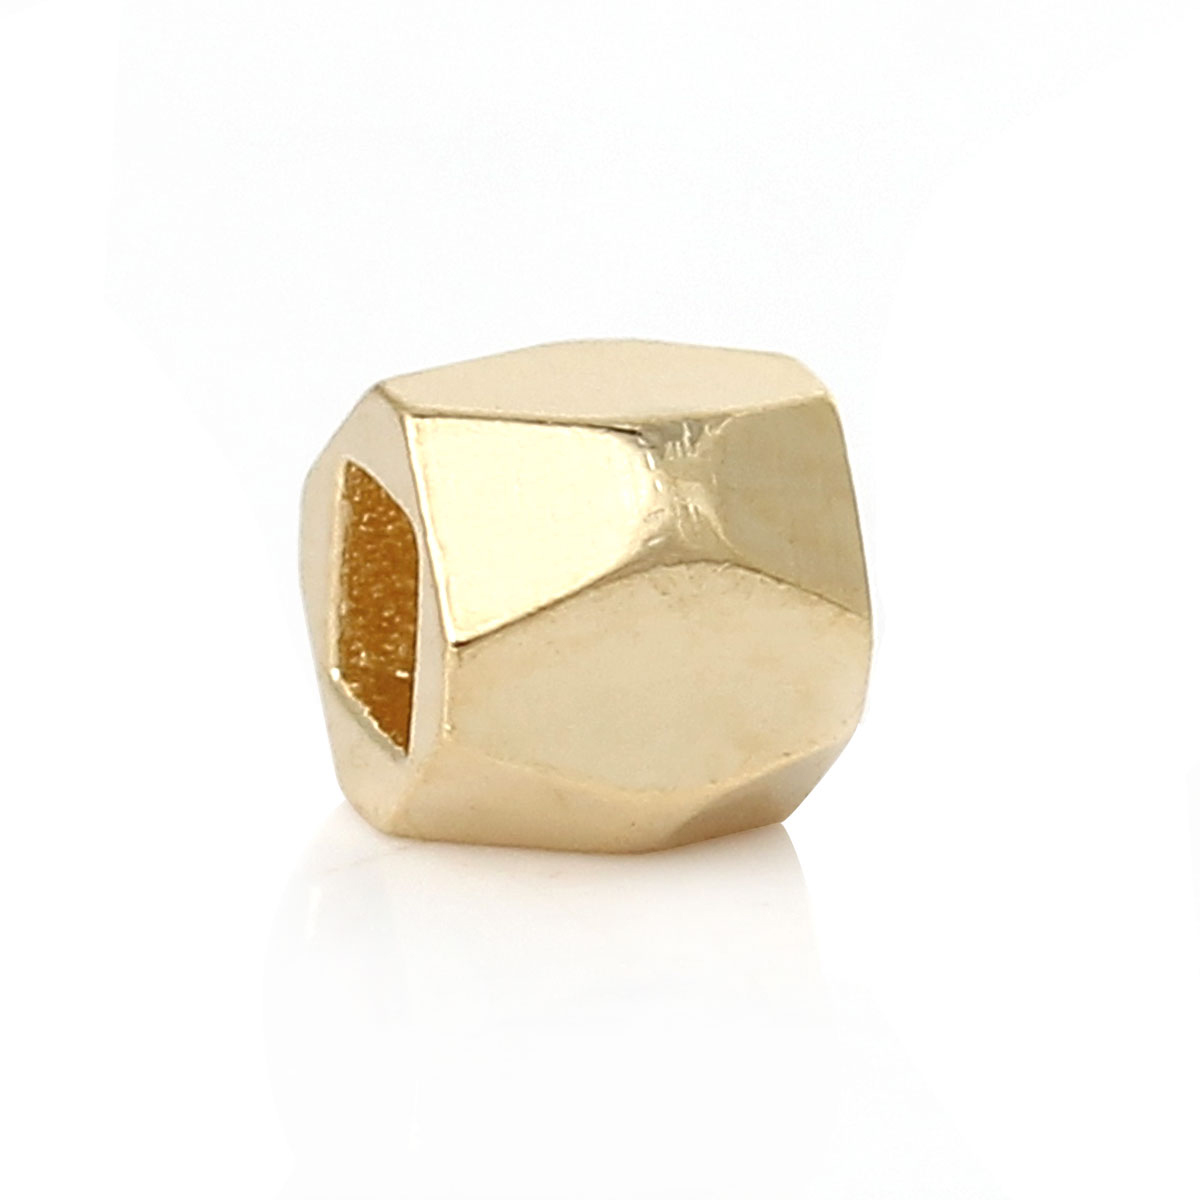 x 3.4mm ,hole:approx 1.7mm X 1.7mm,5 Pieces Beautiful In Colour Doreenbeads Copper Spacer Beads Cube Gold Color Faceted About 3.4mm 1/8 1/8